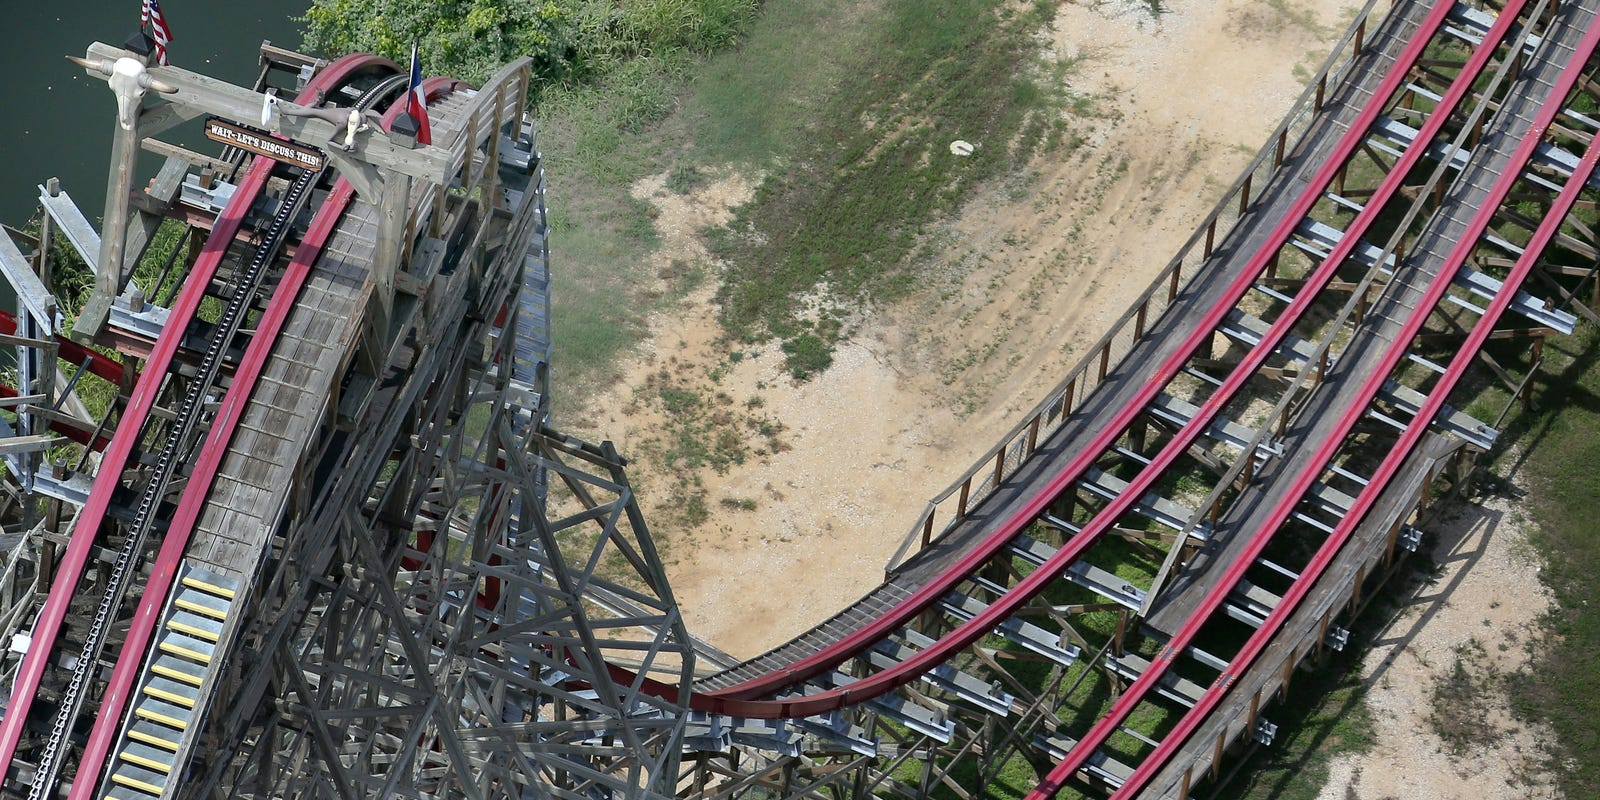 how safe is a roller coaster